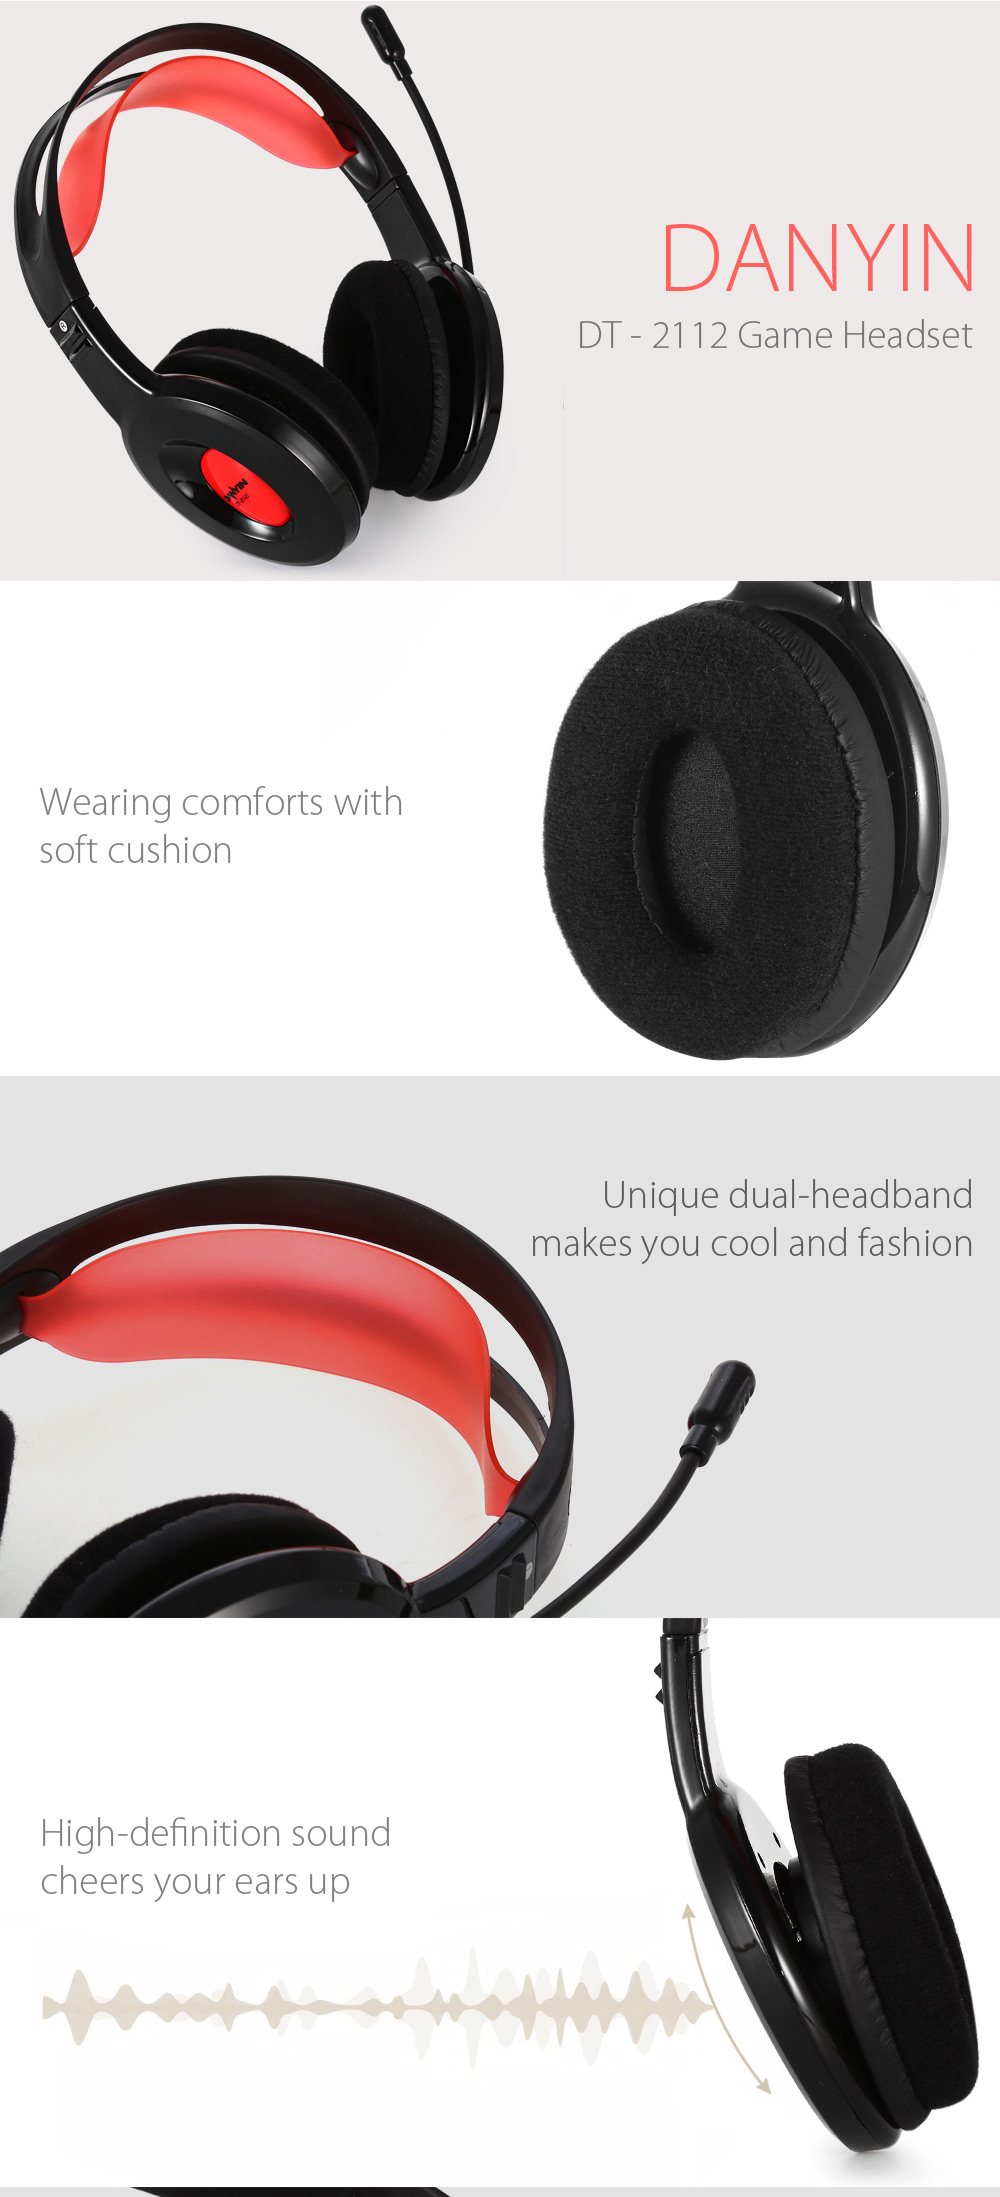 DANYIN DT - 2112 Game Headset for PC